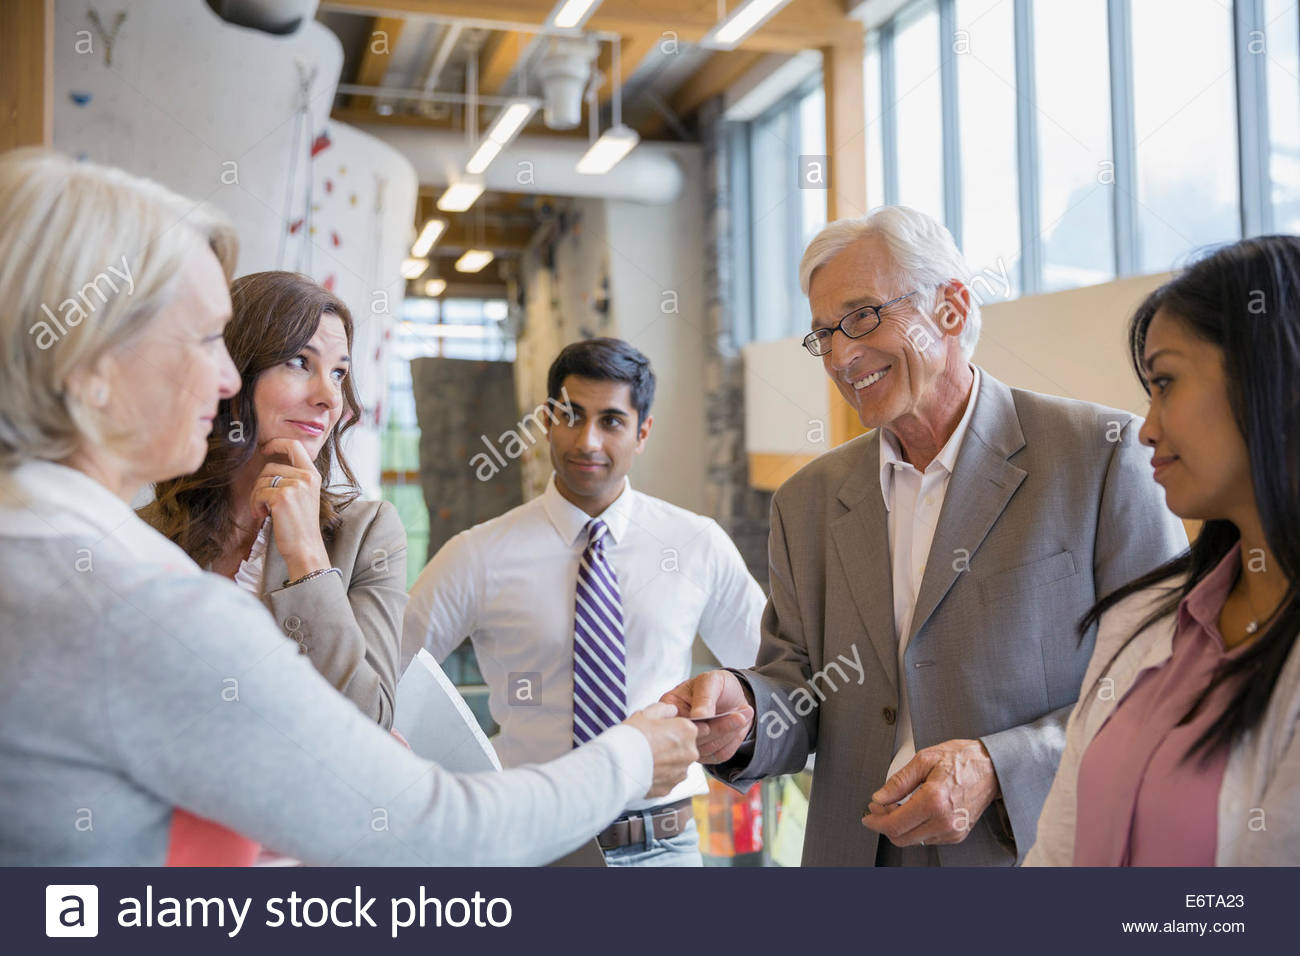 Les gens d'affaires Echange de cartes in office lobby Photo Stock